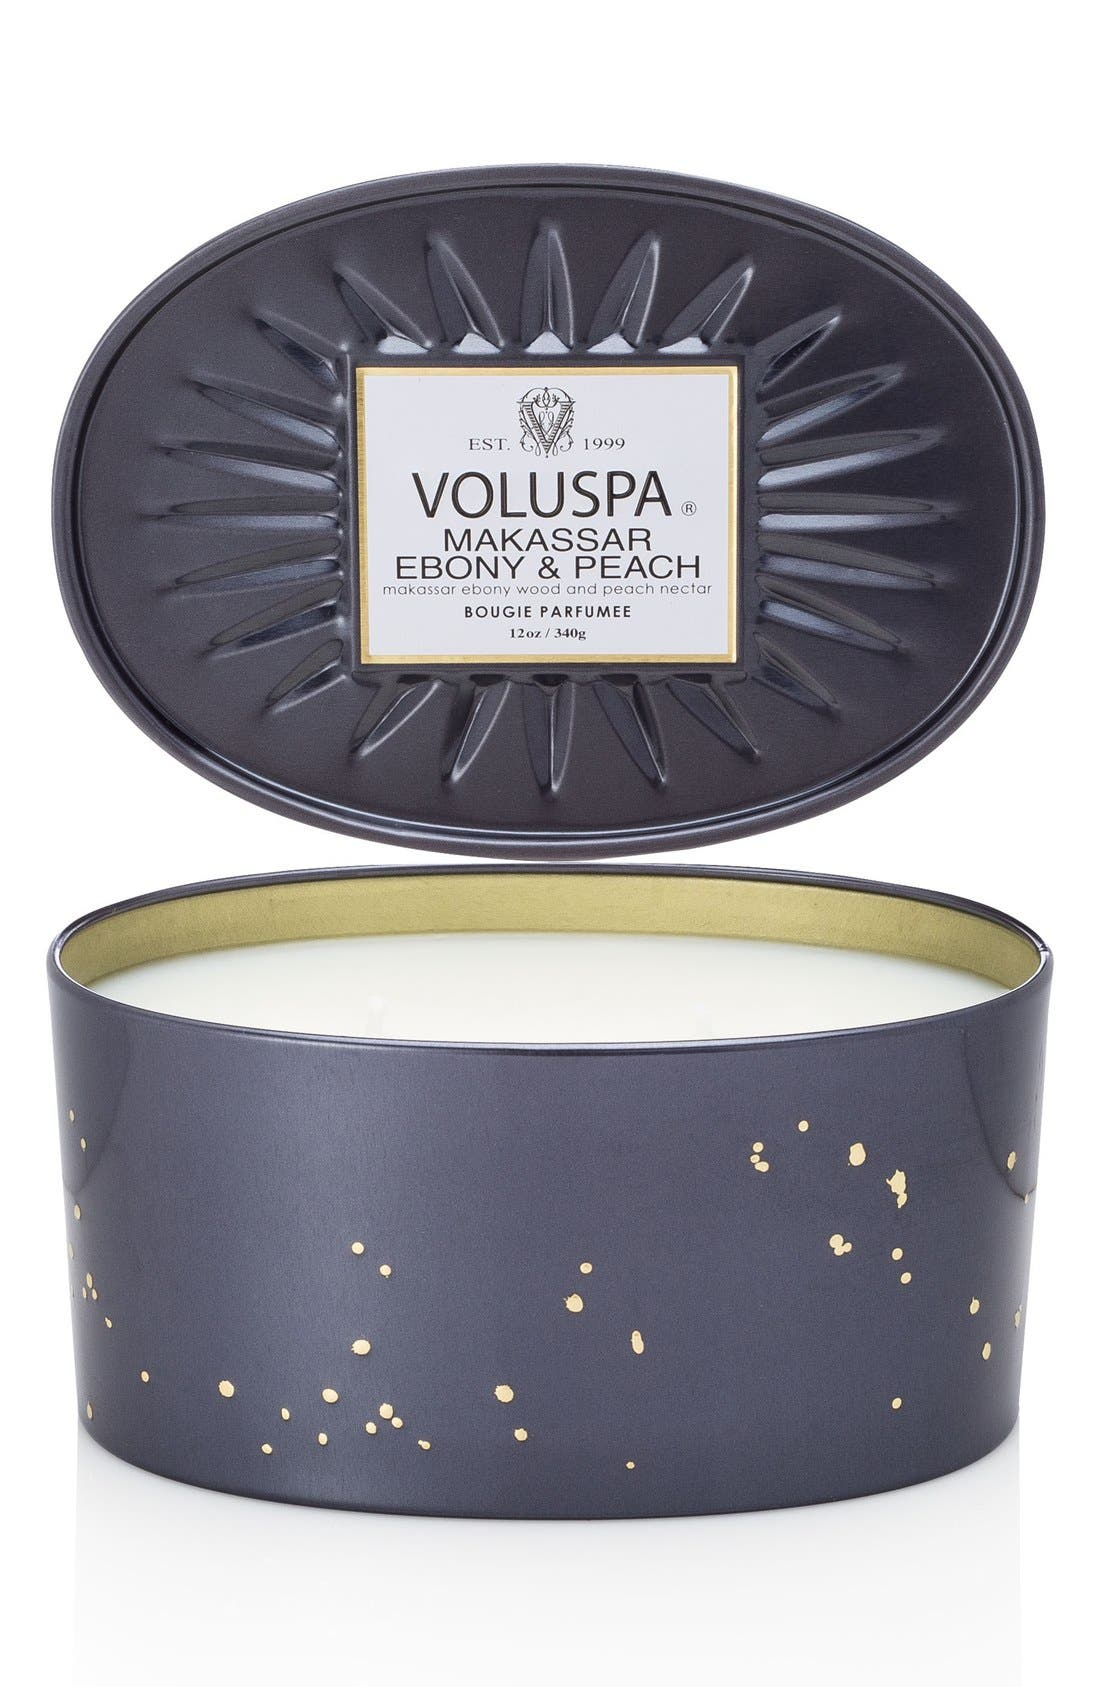 Voluspa 'Vermeil - Makassar Ebony & Peach' Two-Wick Candle